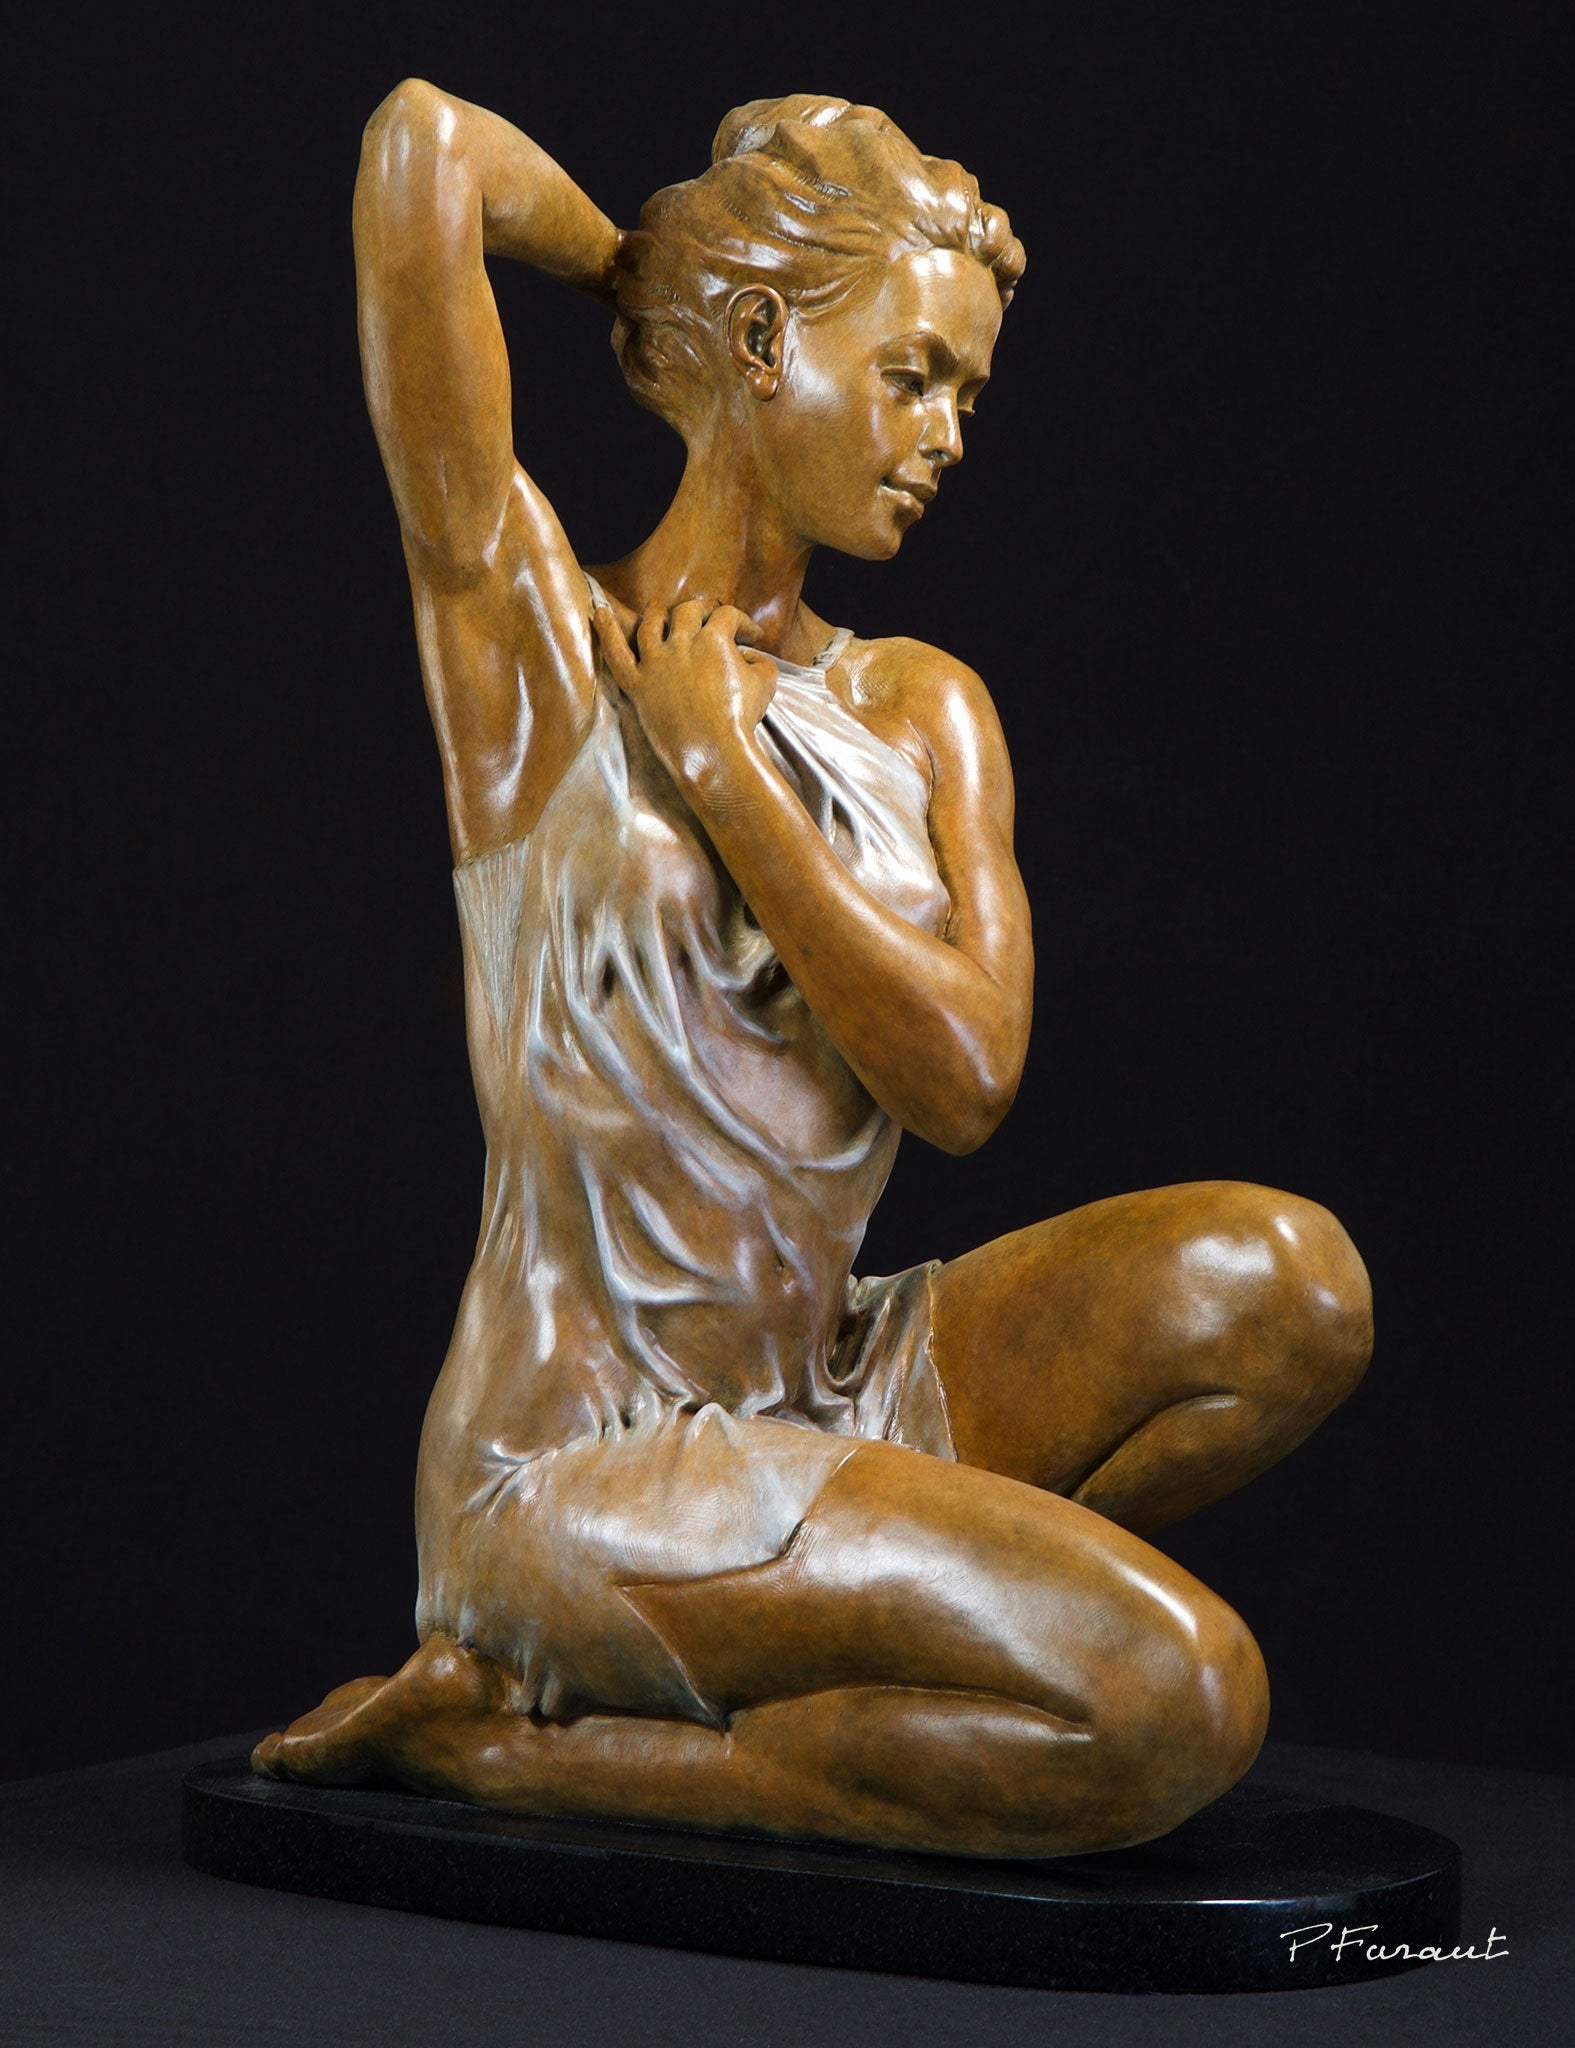 Beautiful bronze figure sculpture of young woman in sheer fabric limited edition bronze by Faraut